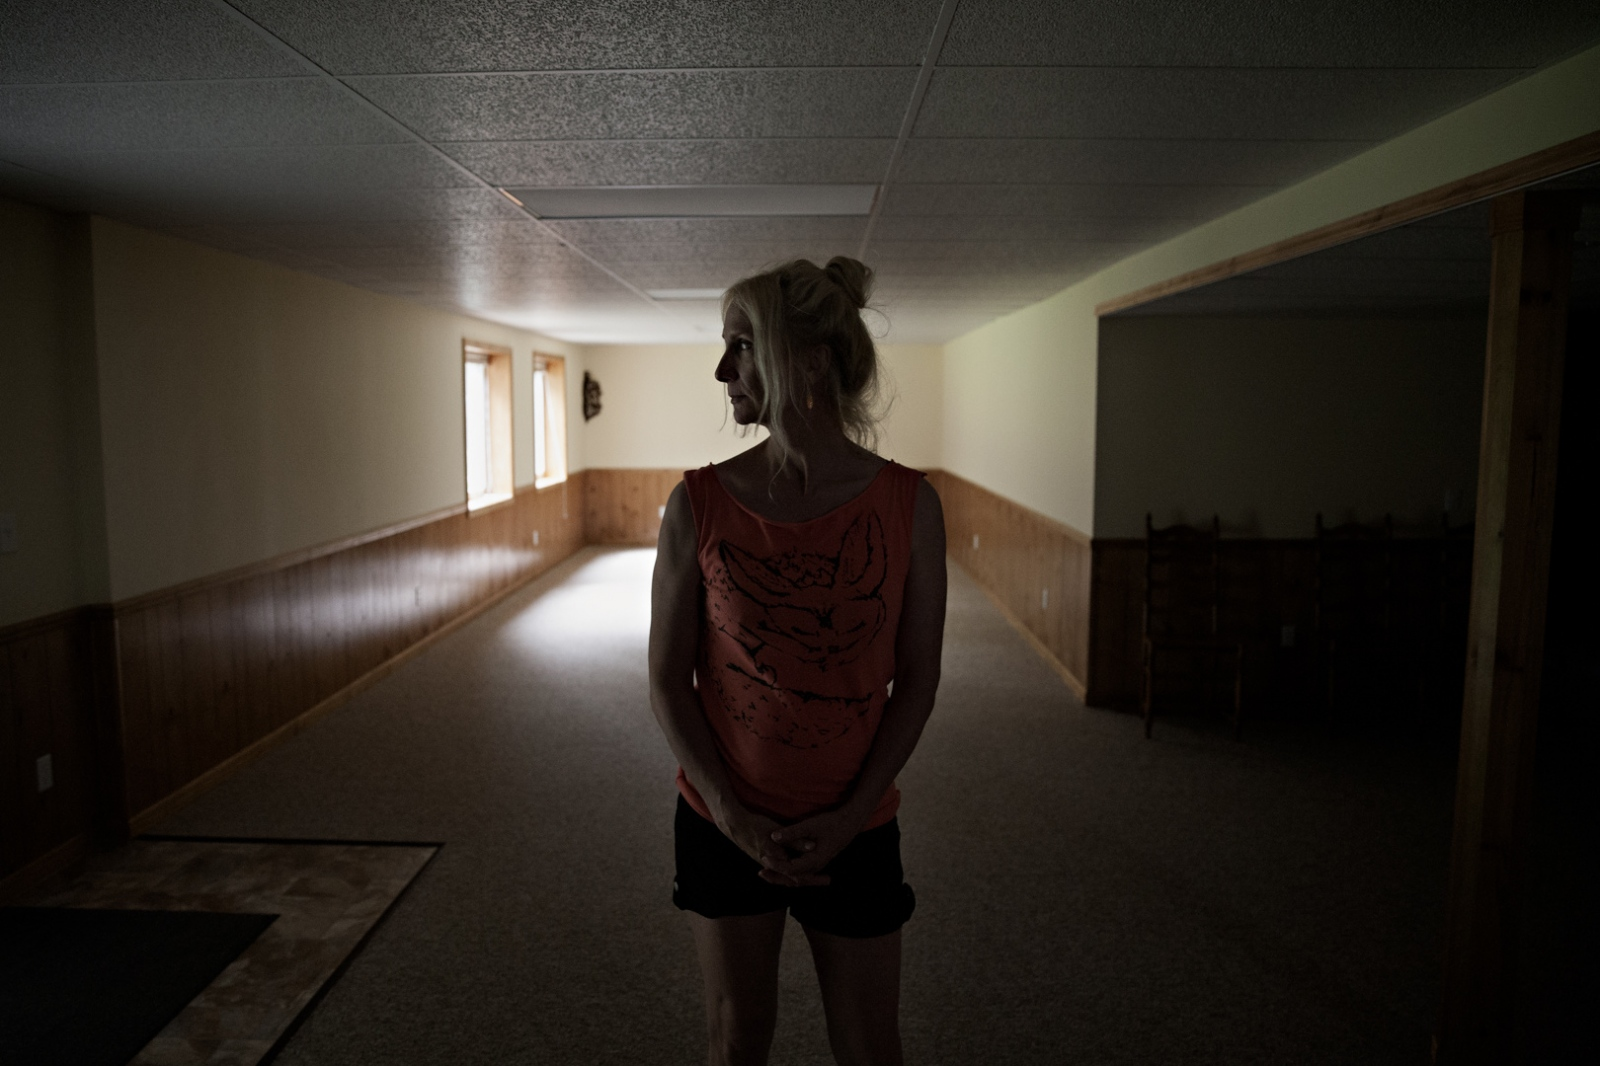 Dee's father lives in a small town in Michigan, and is undergoing a transition of his own and is in the process of selling their home and moving in with his daughter. Their family home basement now sits empty and the house is listed for sale.